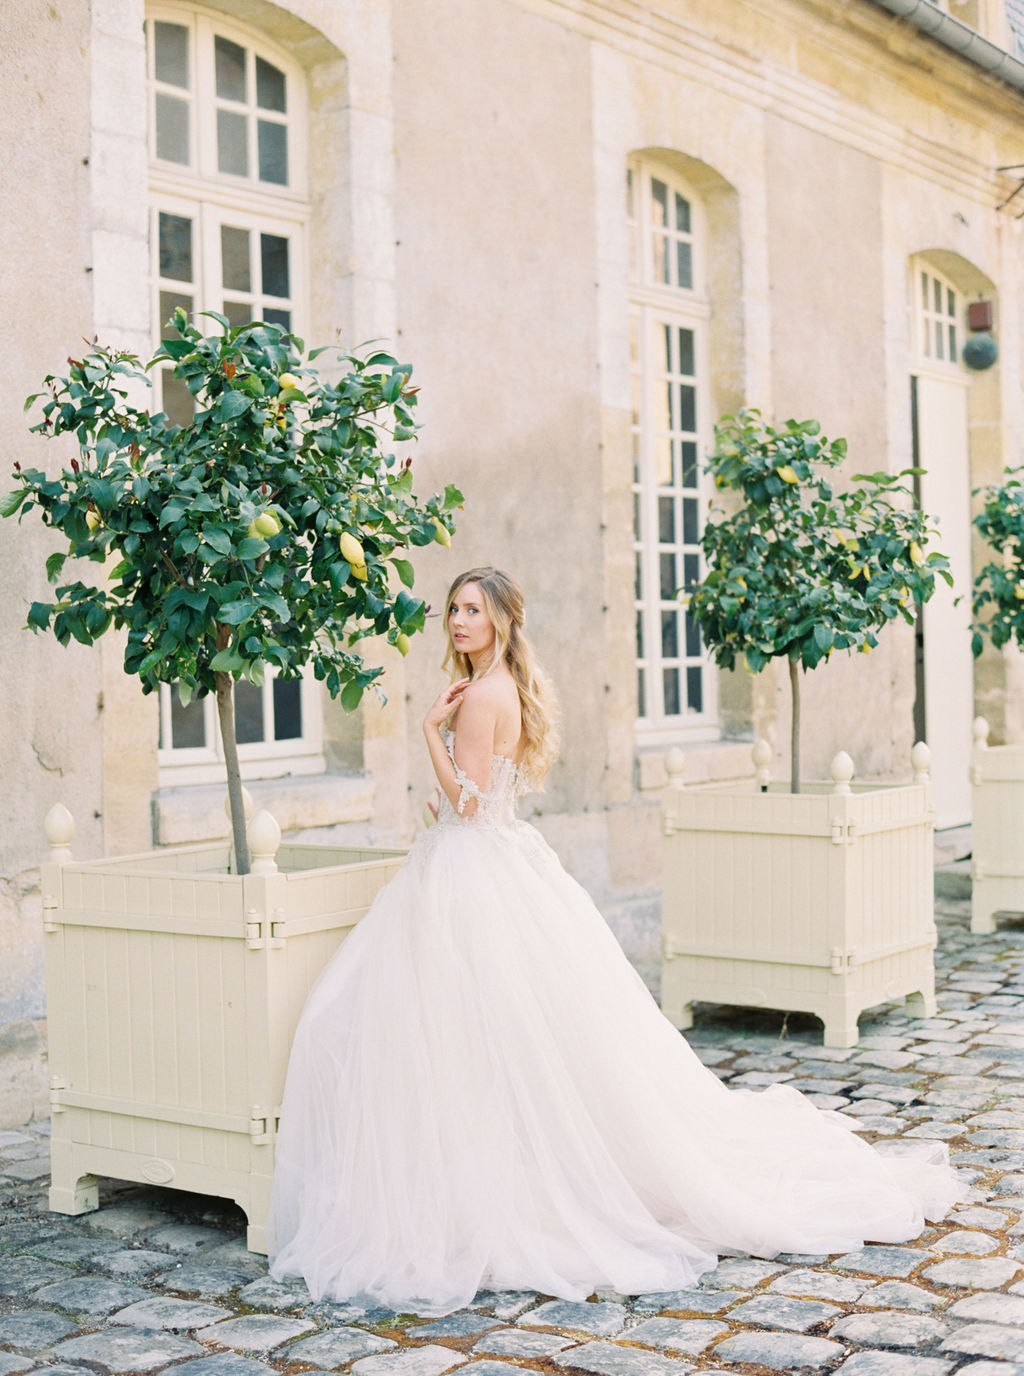 travellur_photoshoot__elegance_Jardin_de_Chateau_de_Villette_wedding_dress_shoot_galia_lahav_bride.jpg